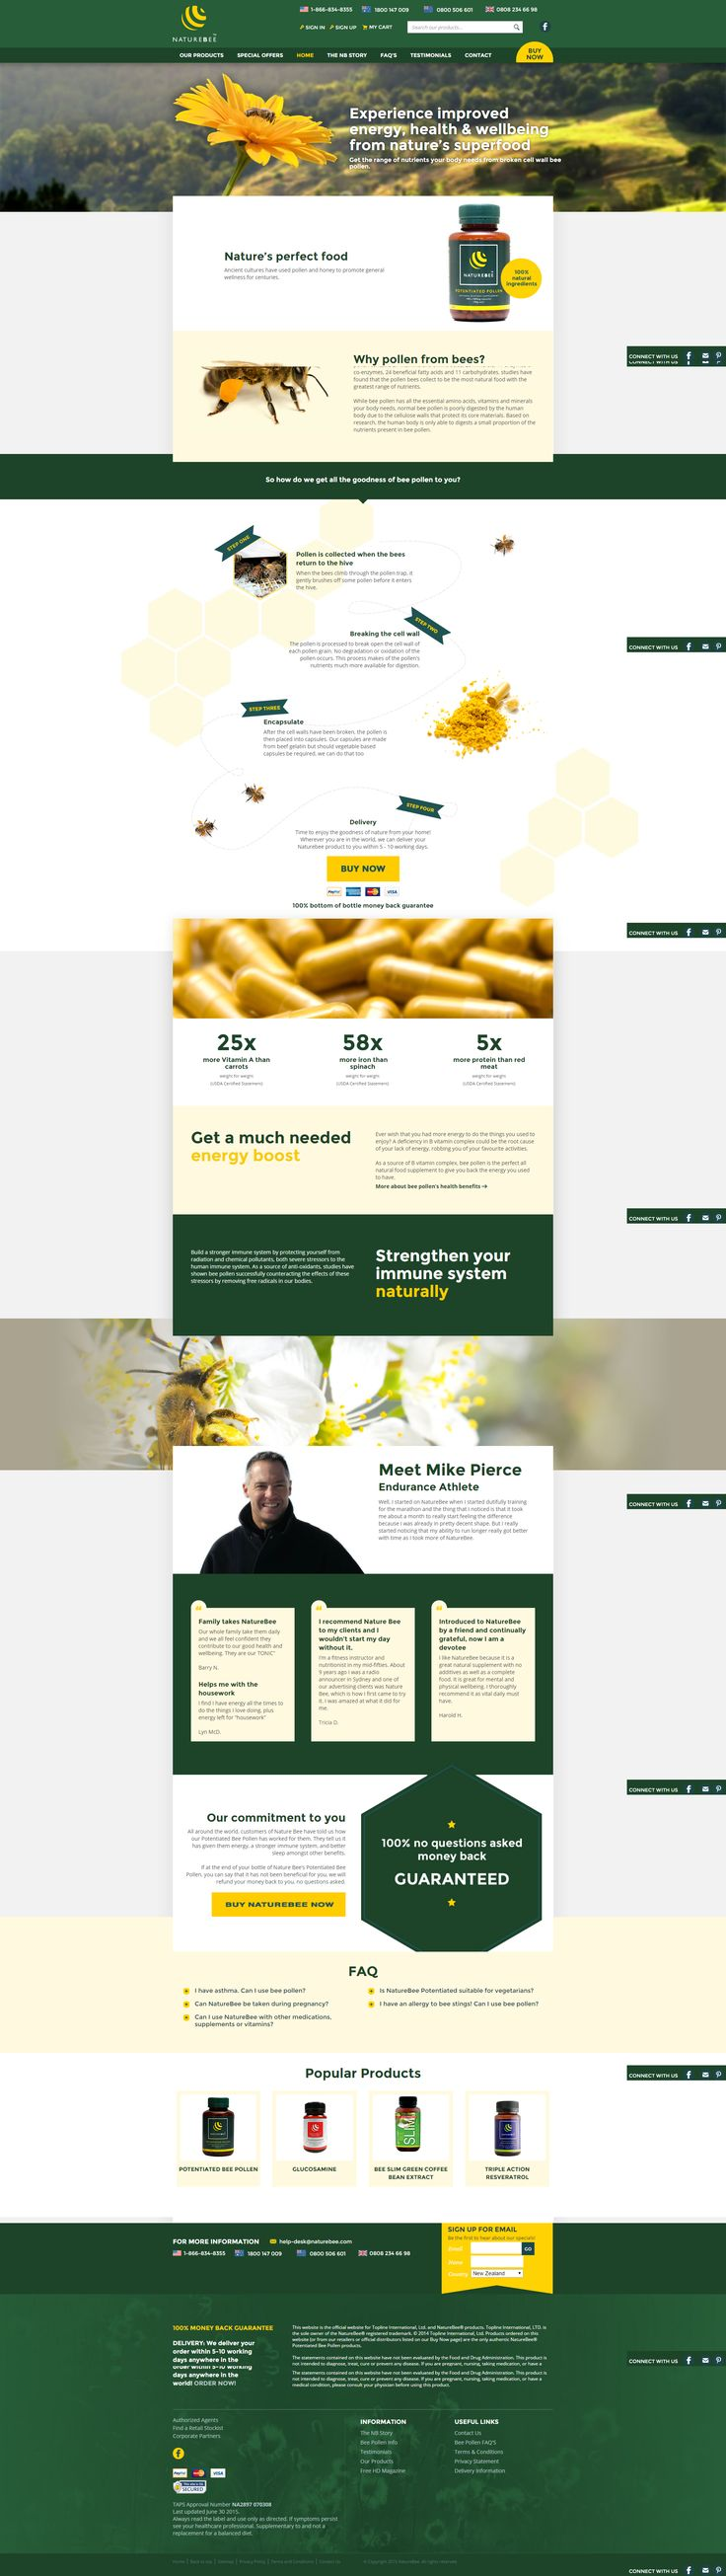 Nature Bee - The art and science of good #websitedesign #website #websiteredesign #webdesign #designinsperation #rethinkyourwebsite #layout #redesign #redesignideas #redesigninspiration #creative #landingpages #beforeafter #responsive #leadgeneration #ecommerce